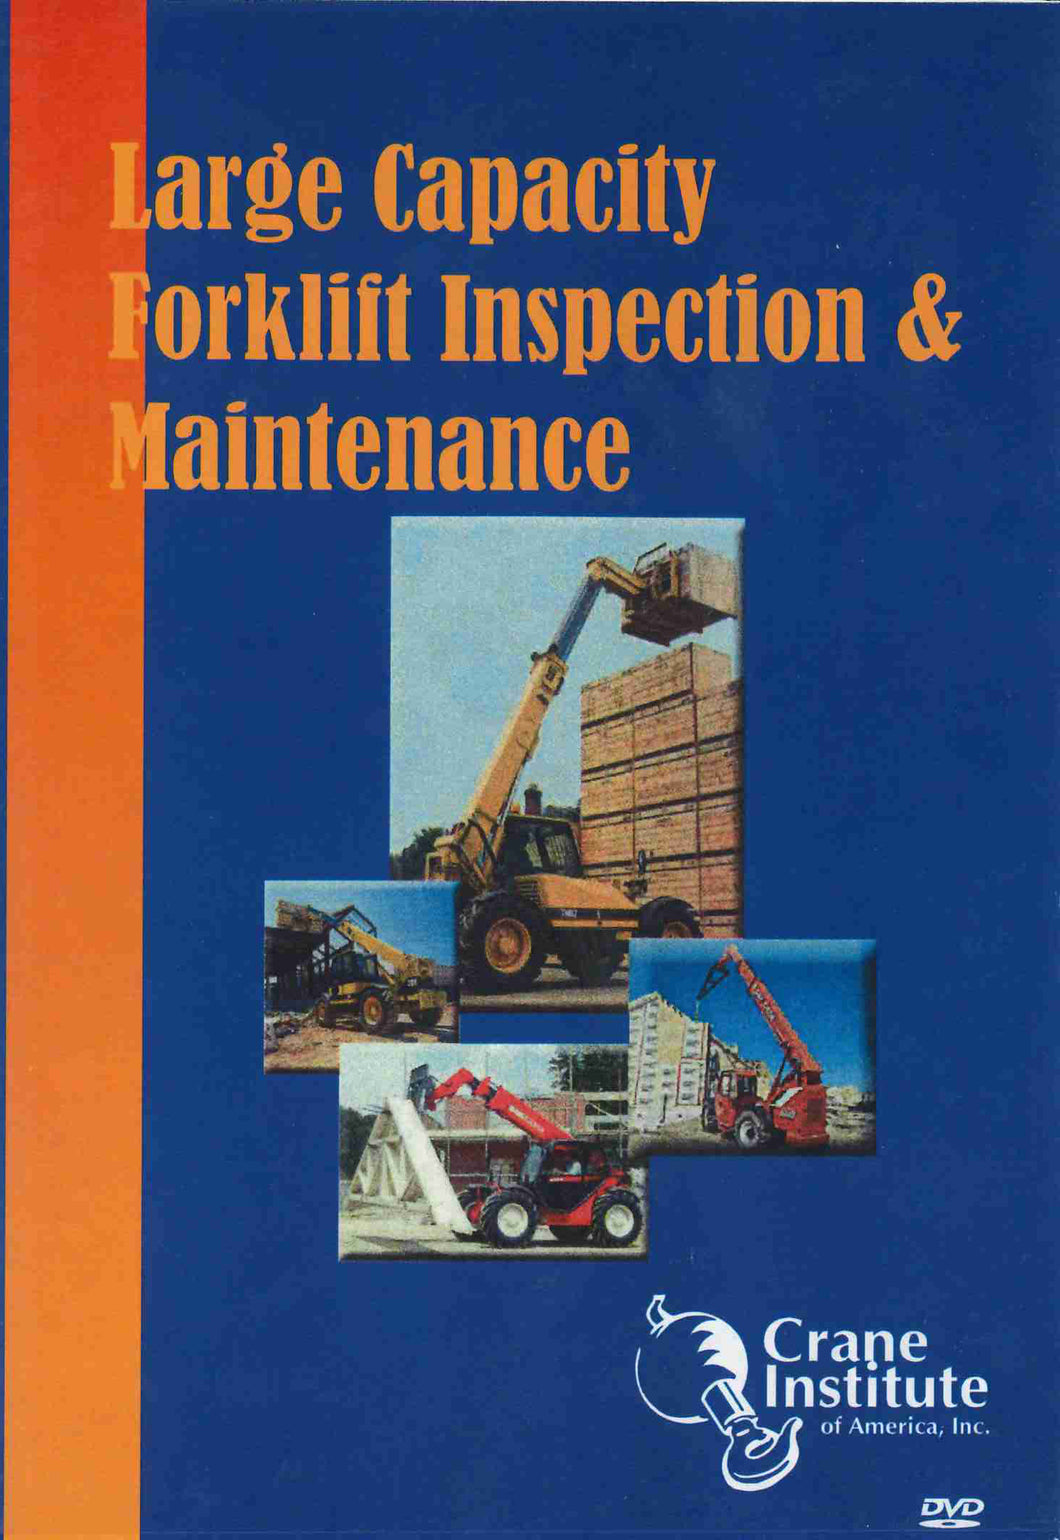 Large Capacity Forklift Inspection and Maintenance DVD